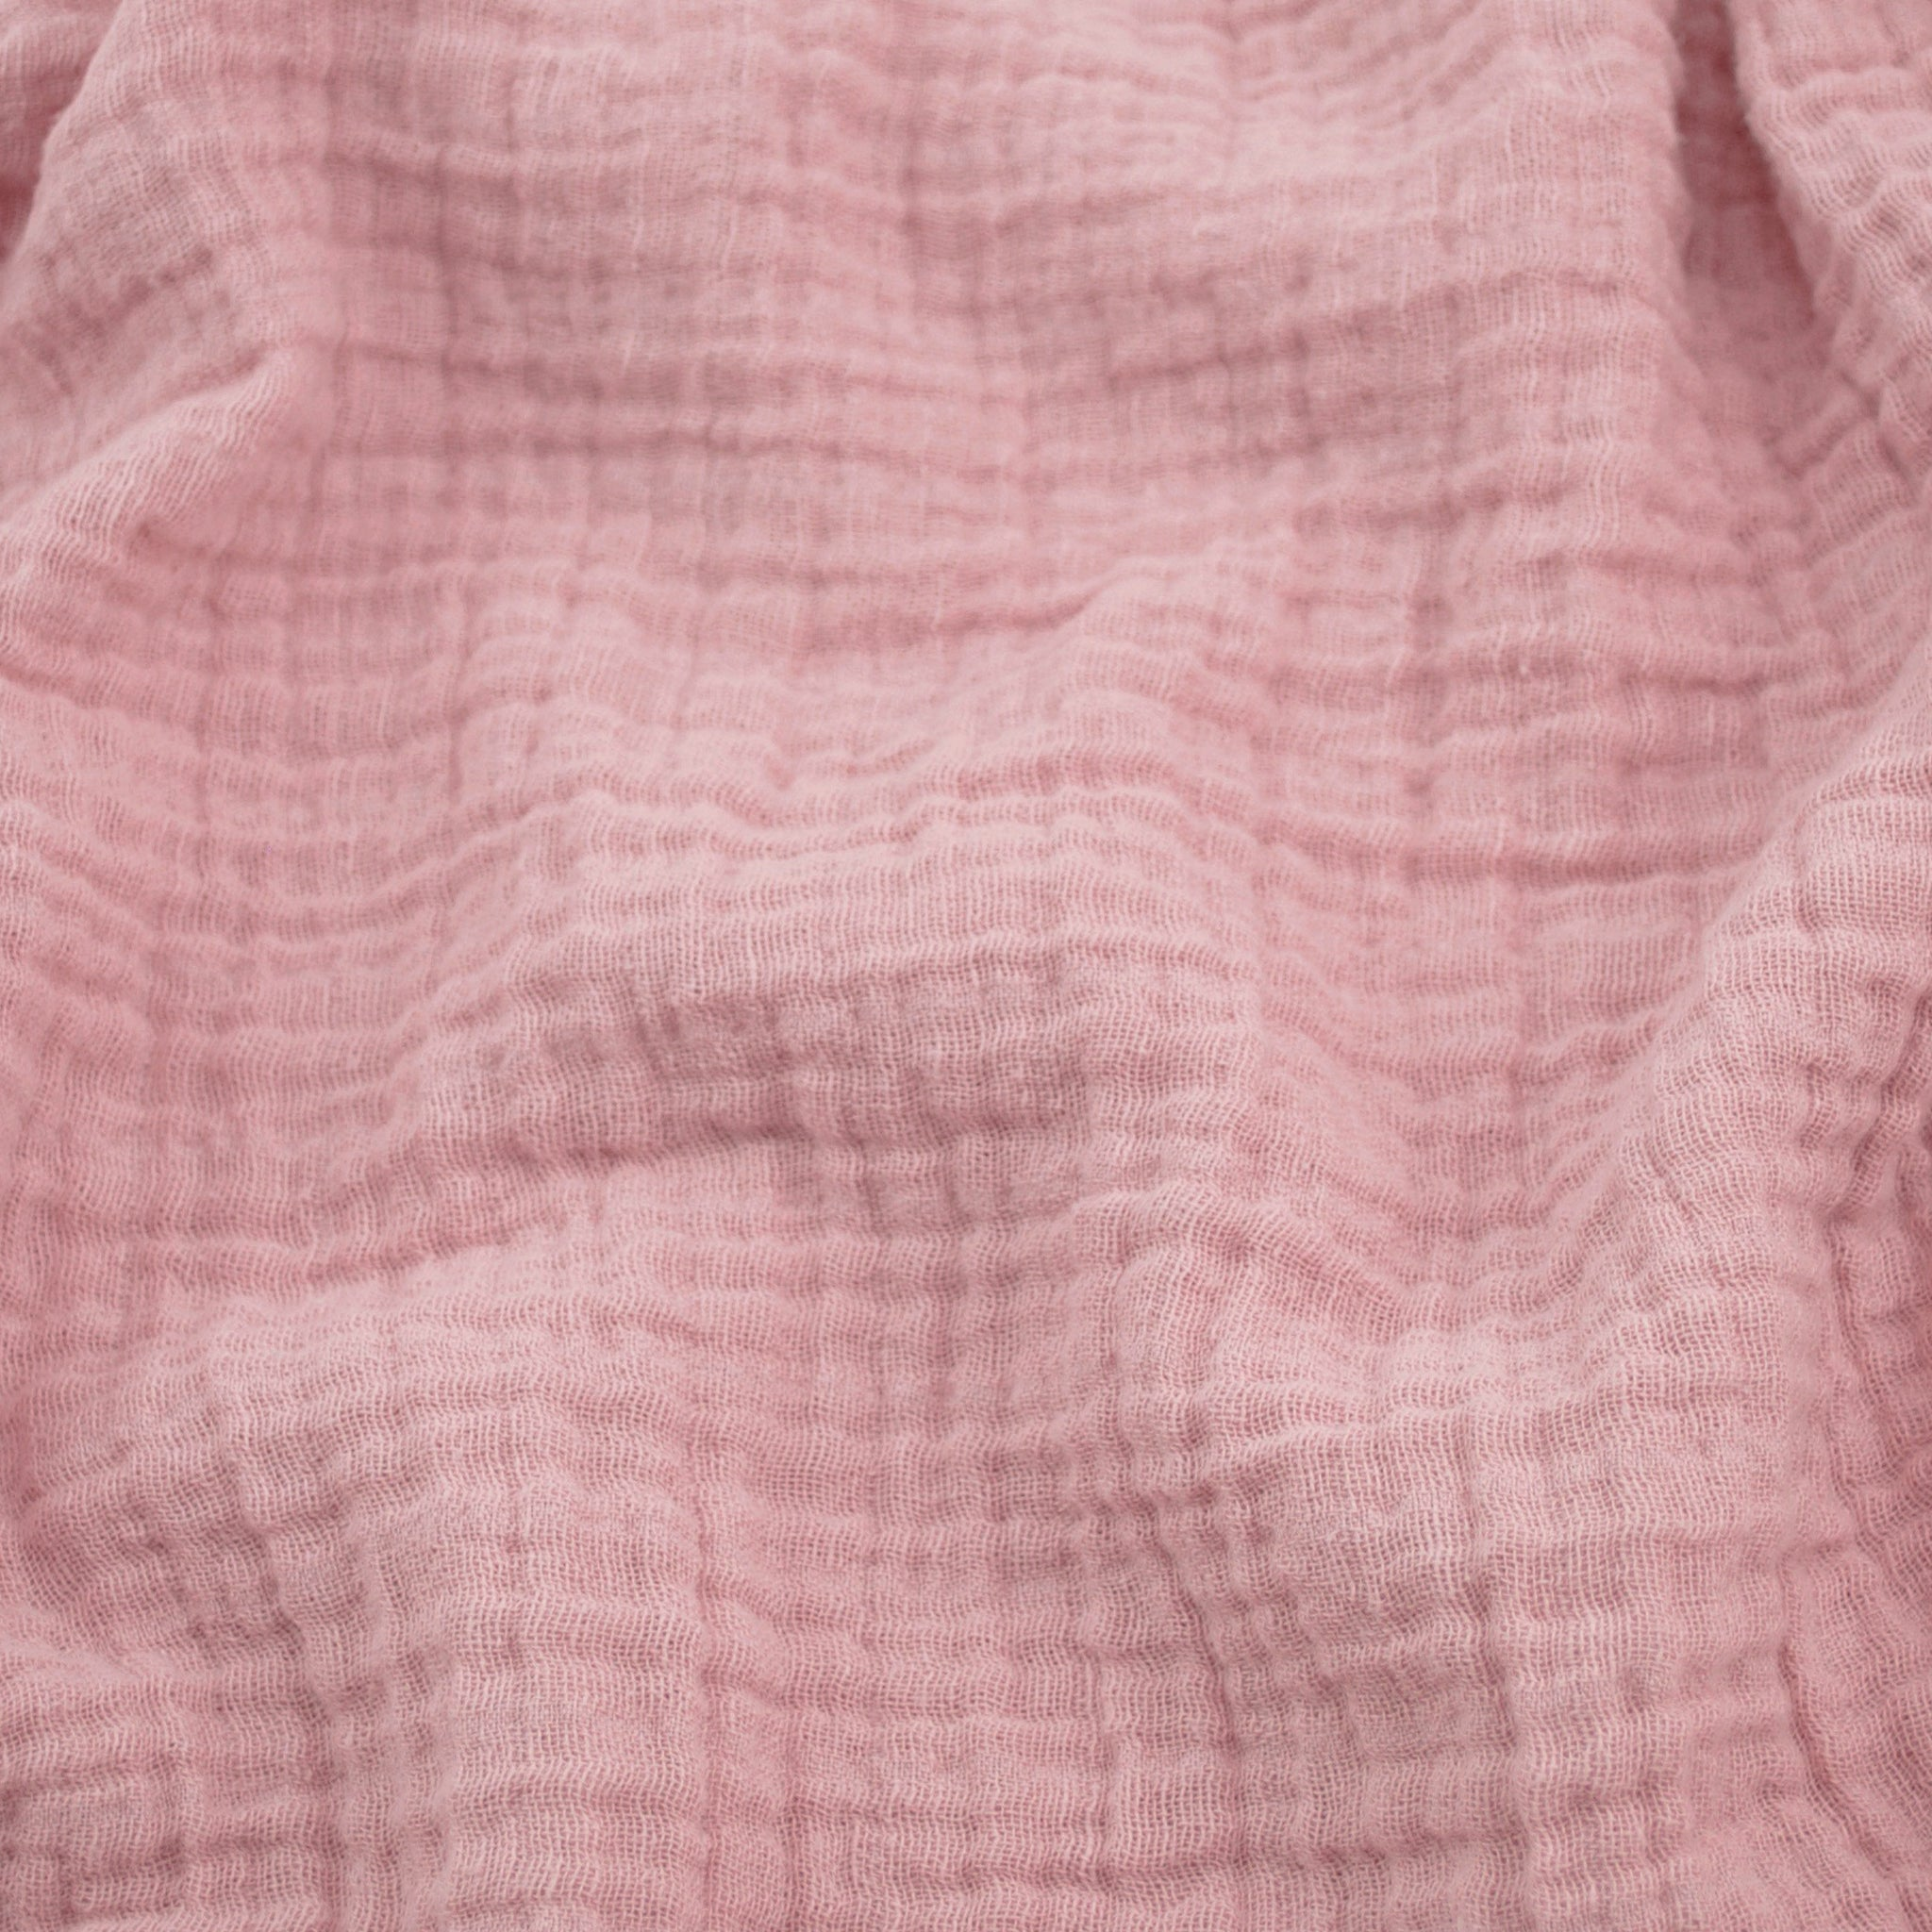 Sunny Double Gauze - Blush Pink - BACKORDERED UNTIL JUNE 2020